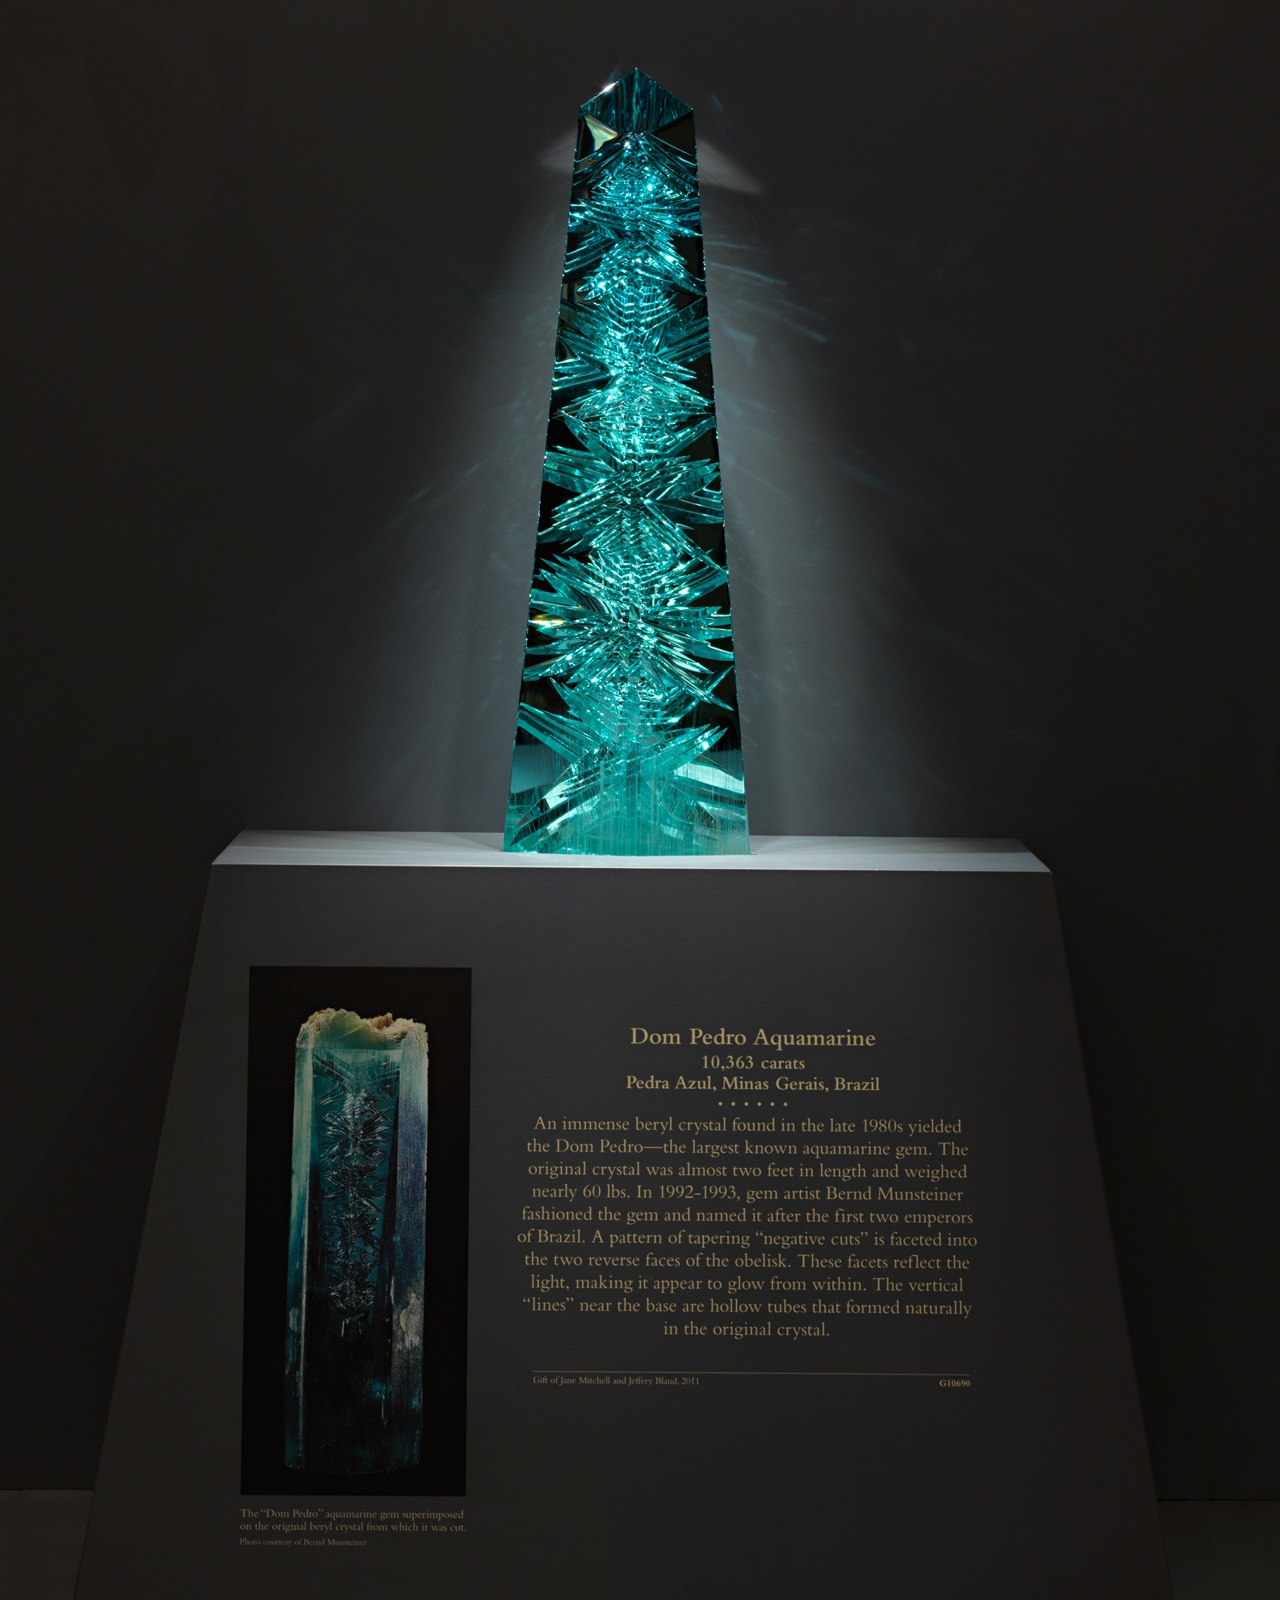 The Dom Pedro aquamarine